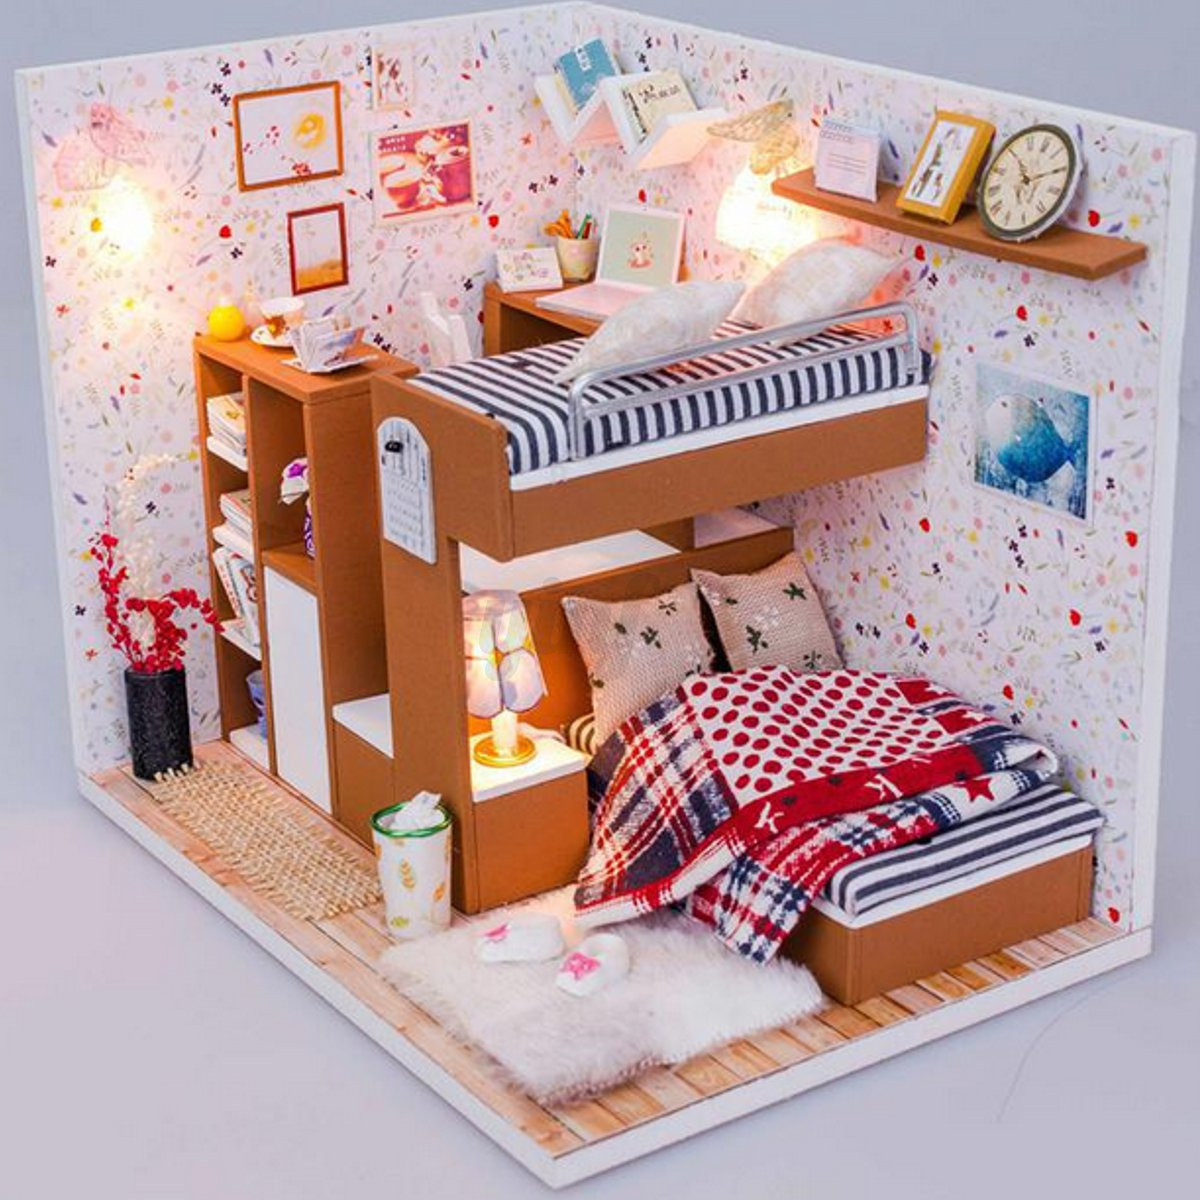 Diy Handmade Doll House Miniature Led Wooden Plastic Furniture Barbie Dollhouse Ebay